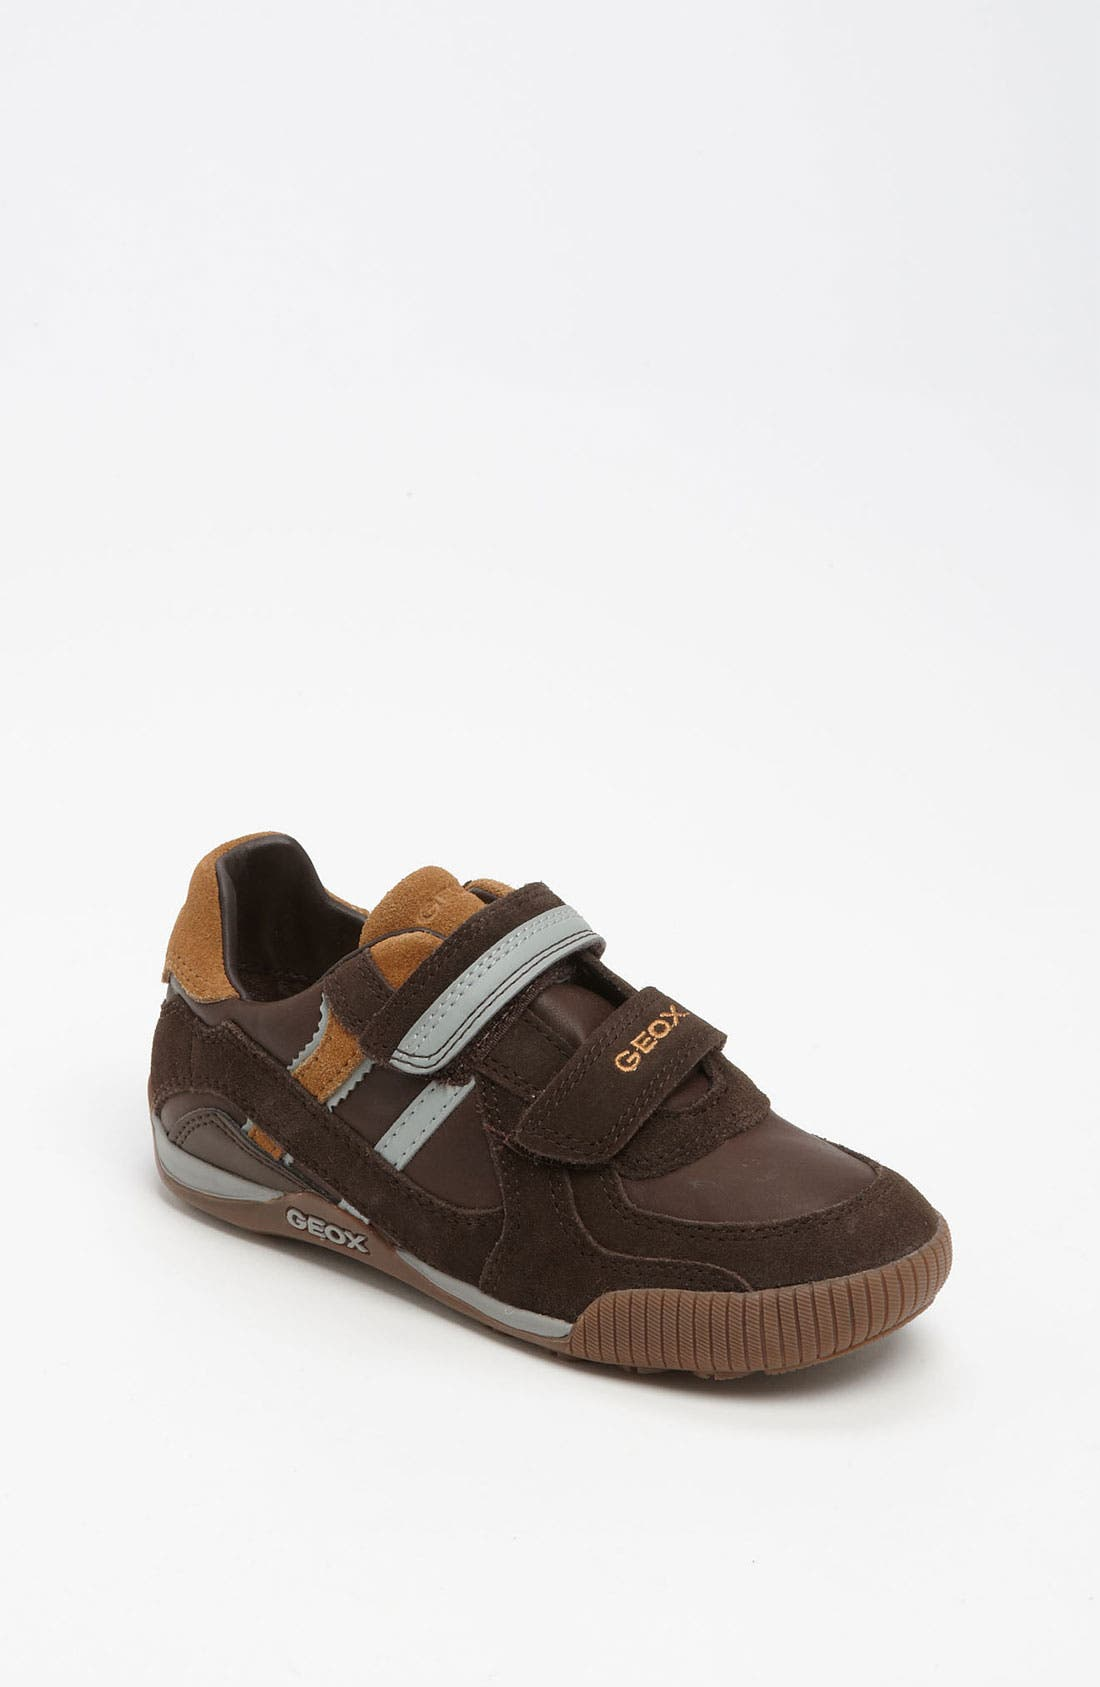 Alternate Image 1 Selected - Geox 'Olimpus' Sneaker (Toddler, Little Kid & Big Kid)